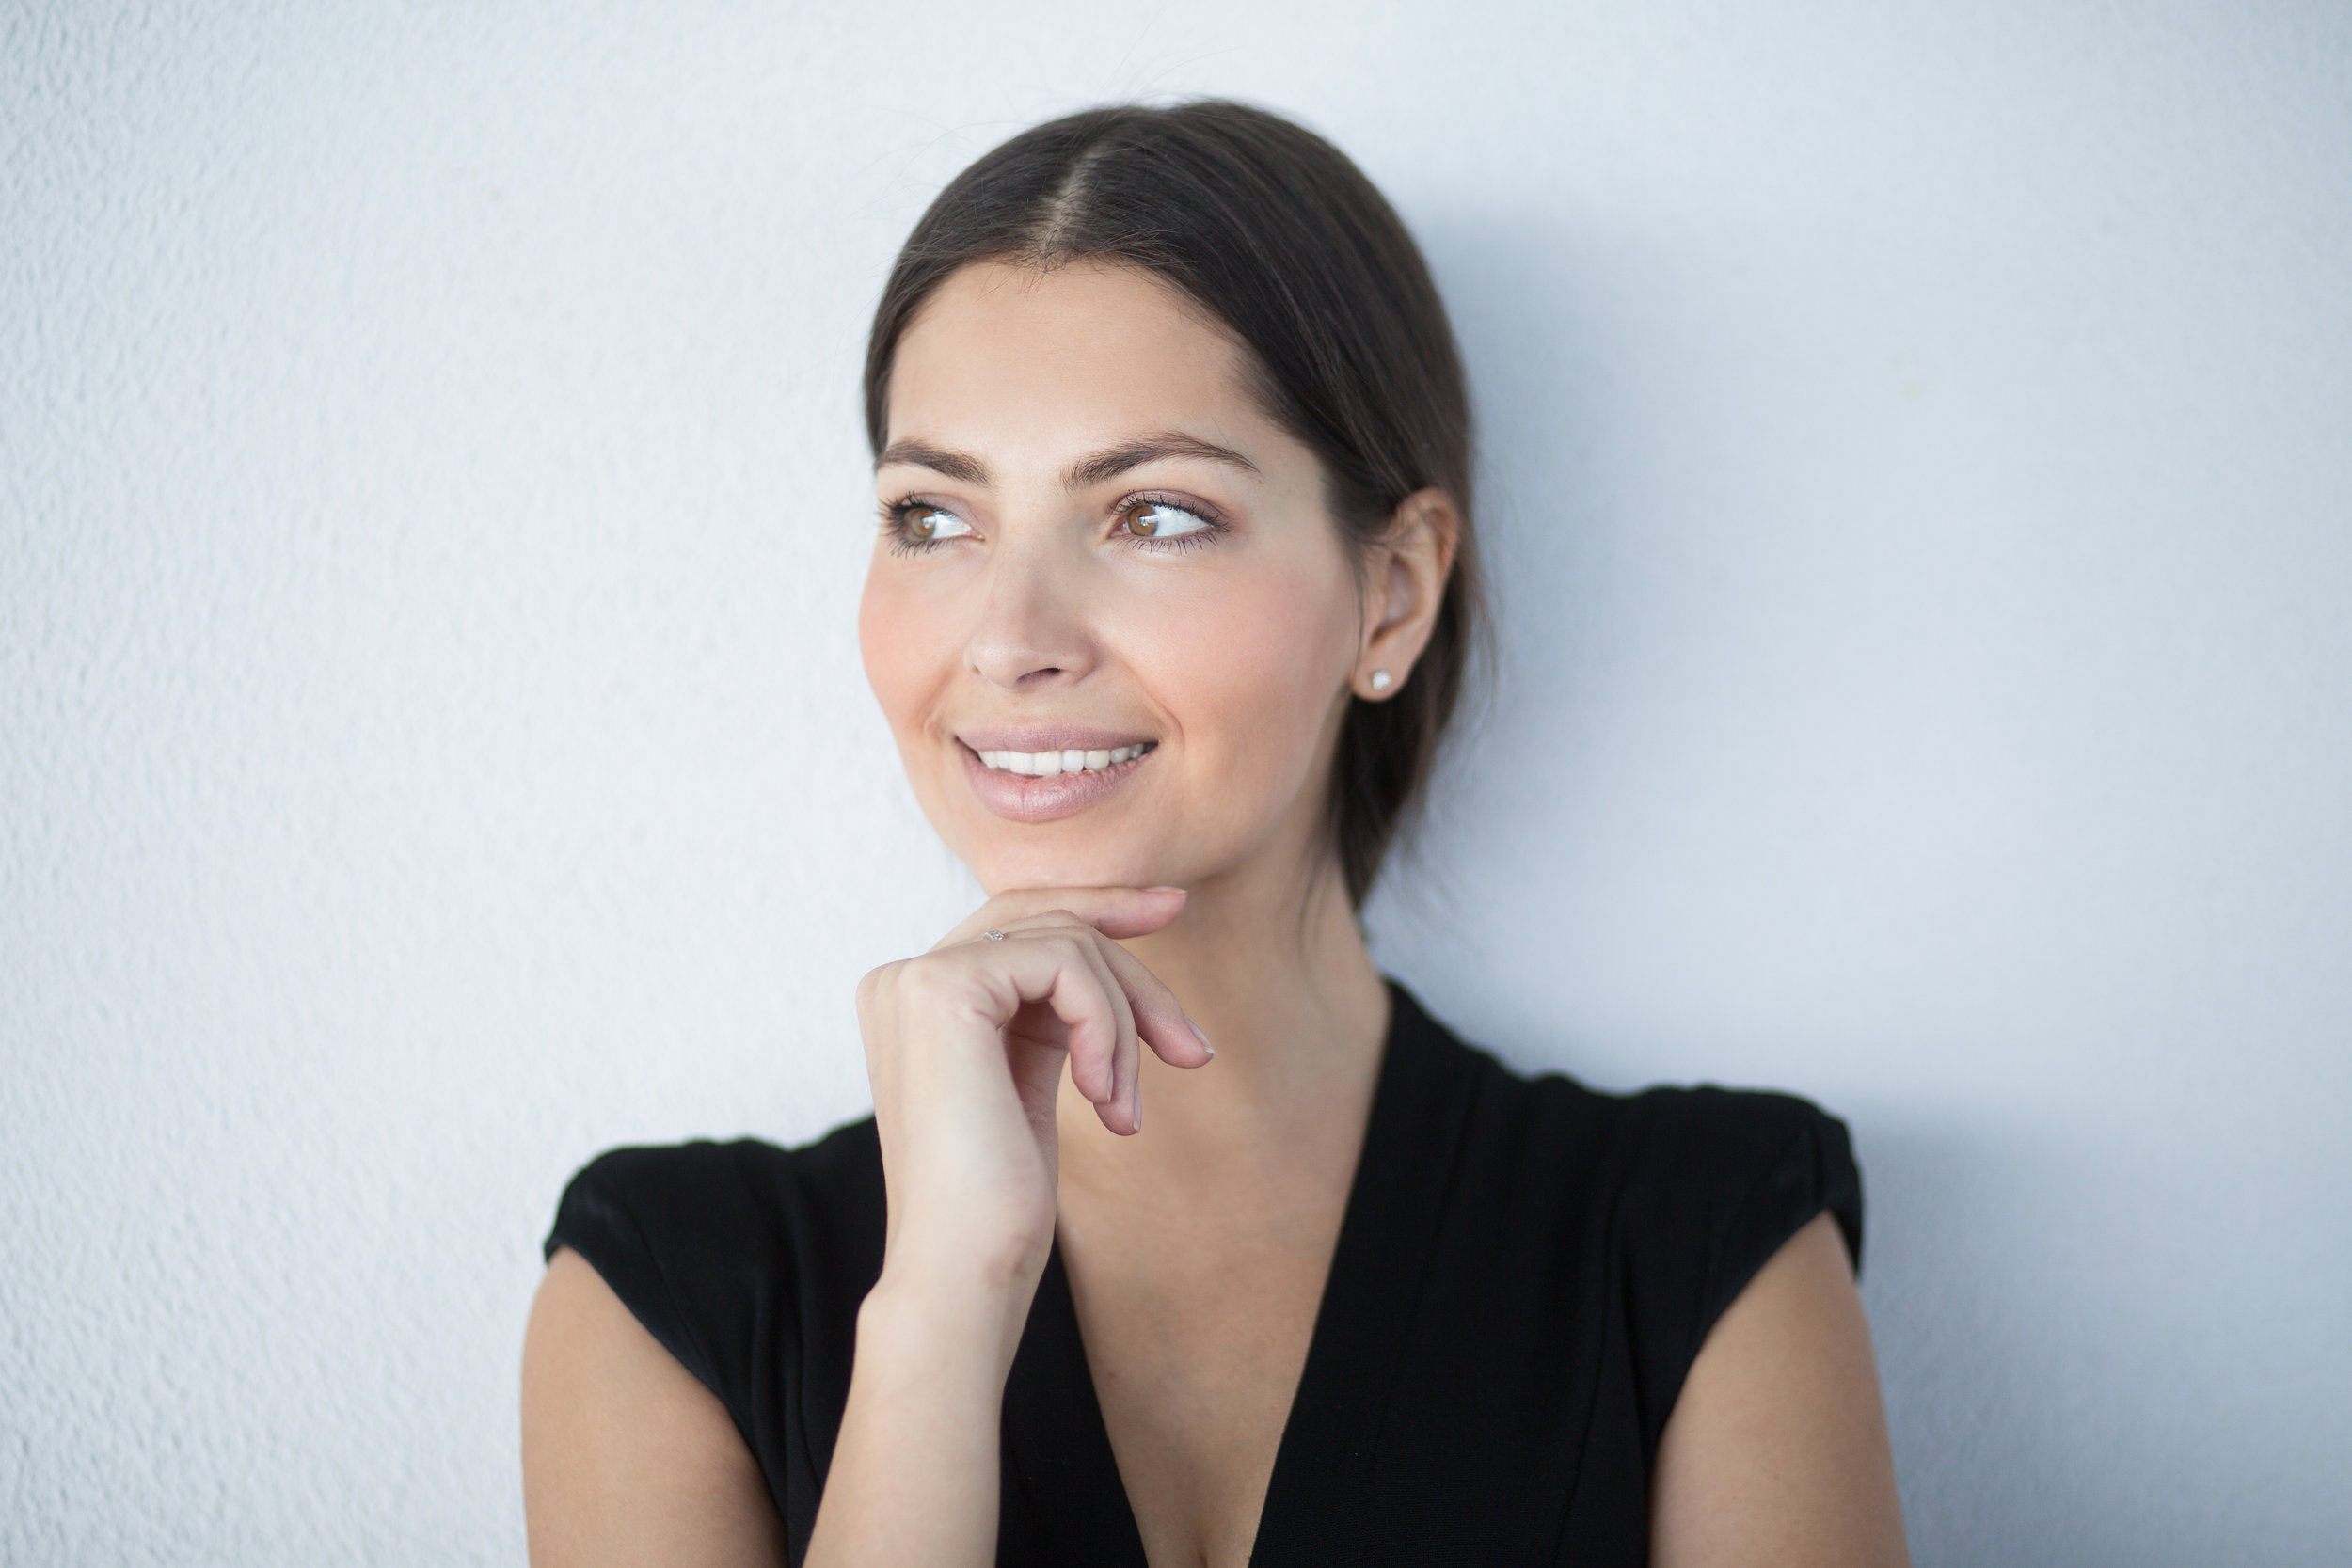 Kybella - Do without the double chin & the surgery.